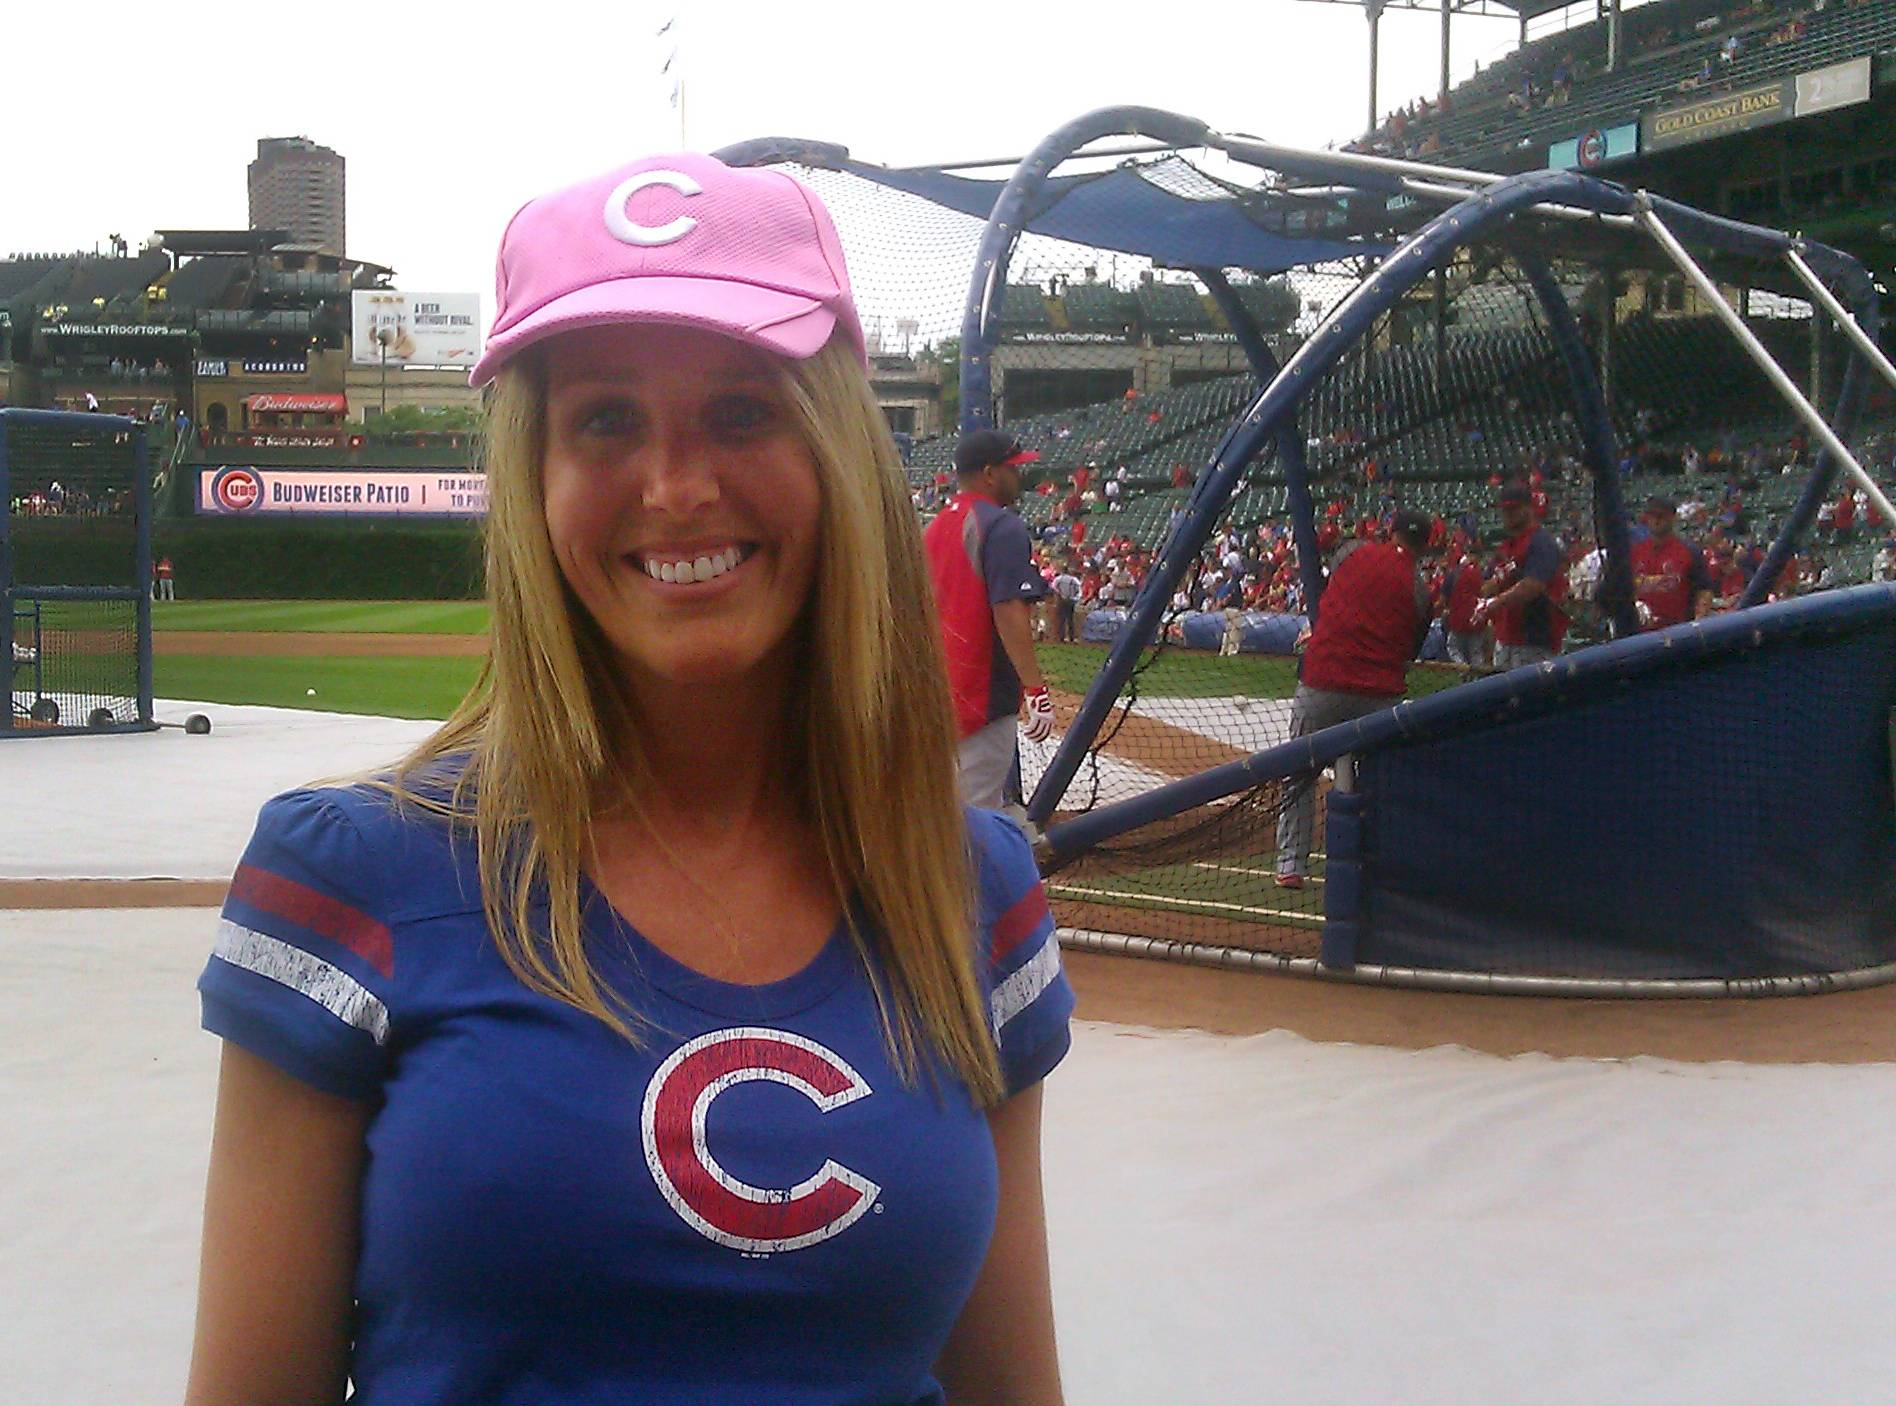 Big thrill for Cary resident at Cubs game